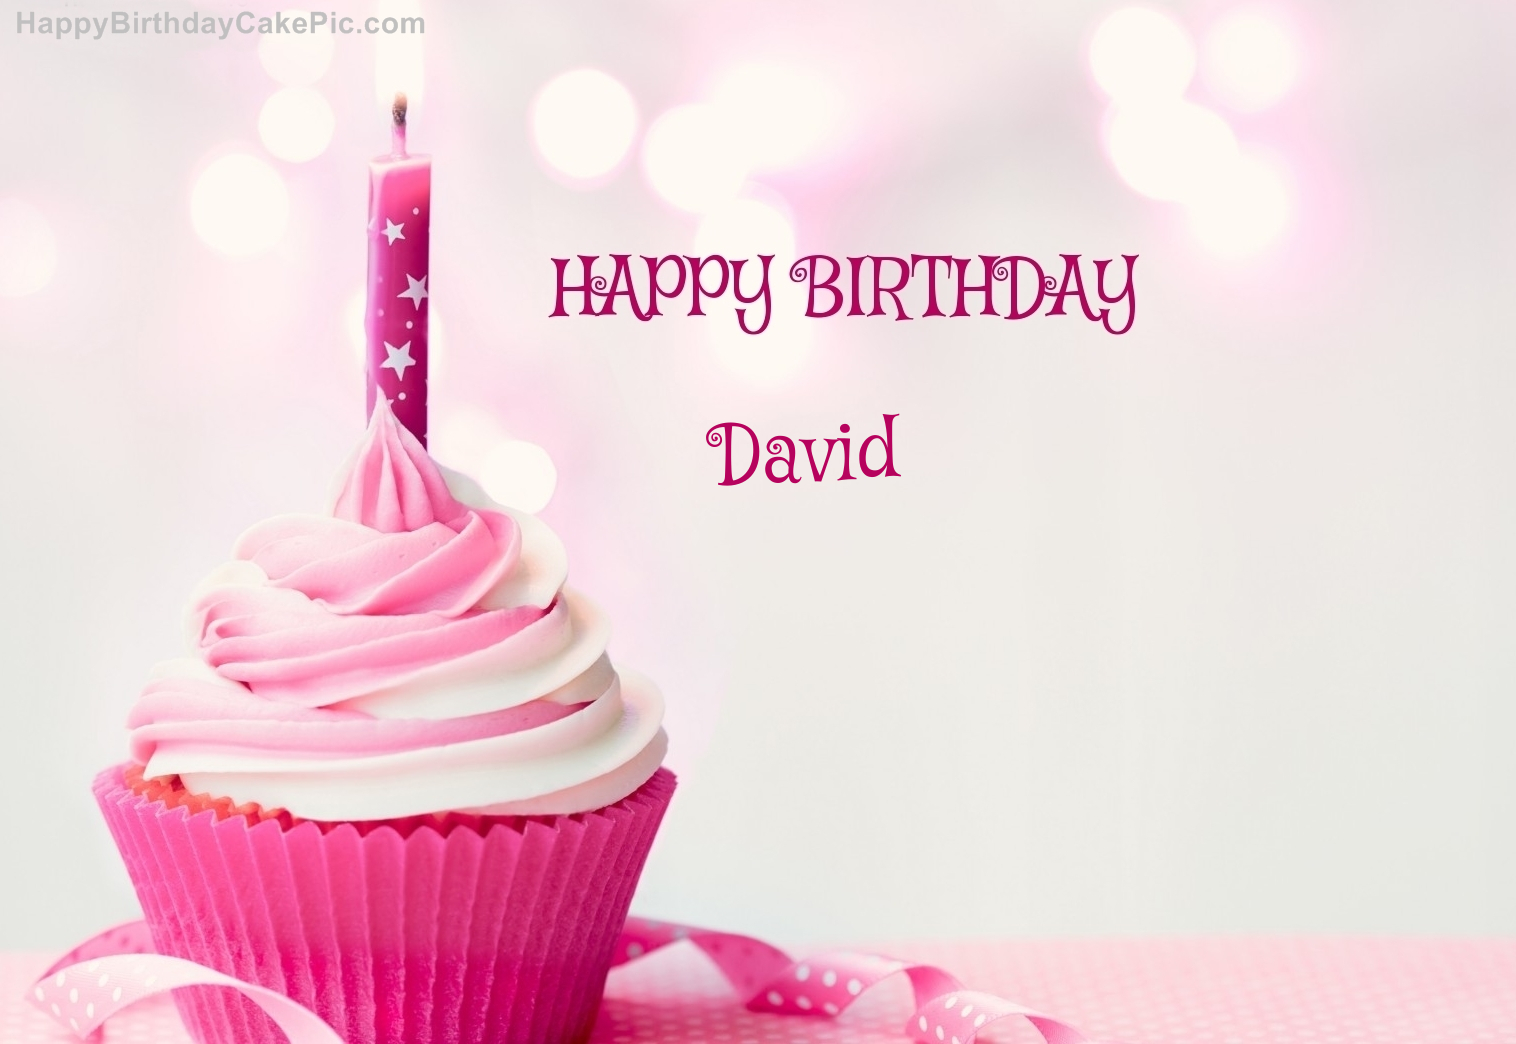 Happy Birthday Cupcake Candle Pink Cake For David